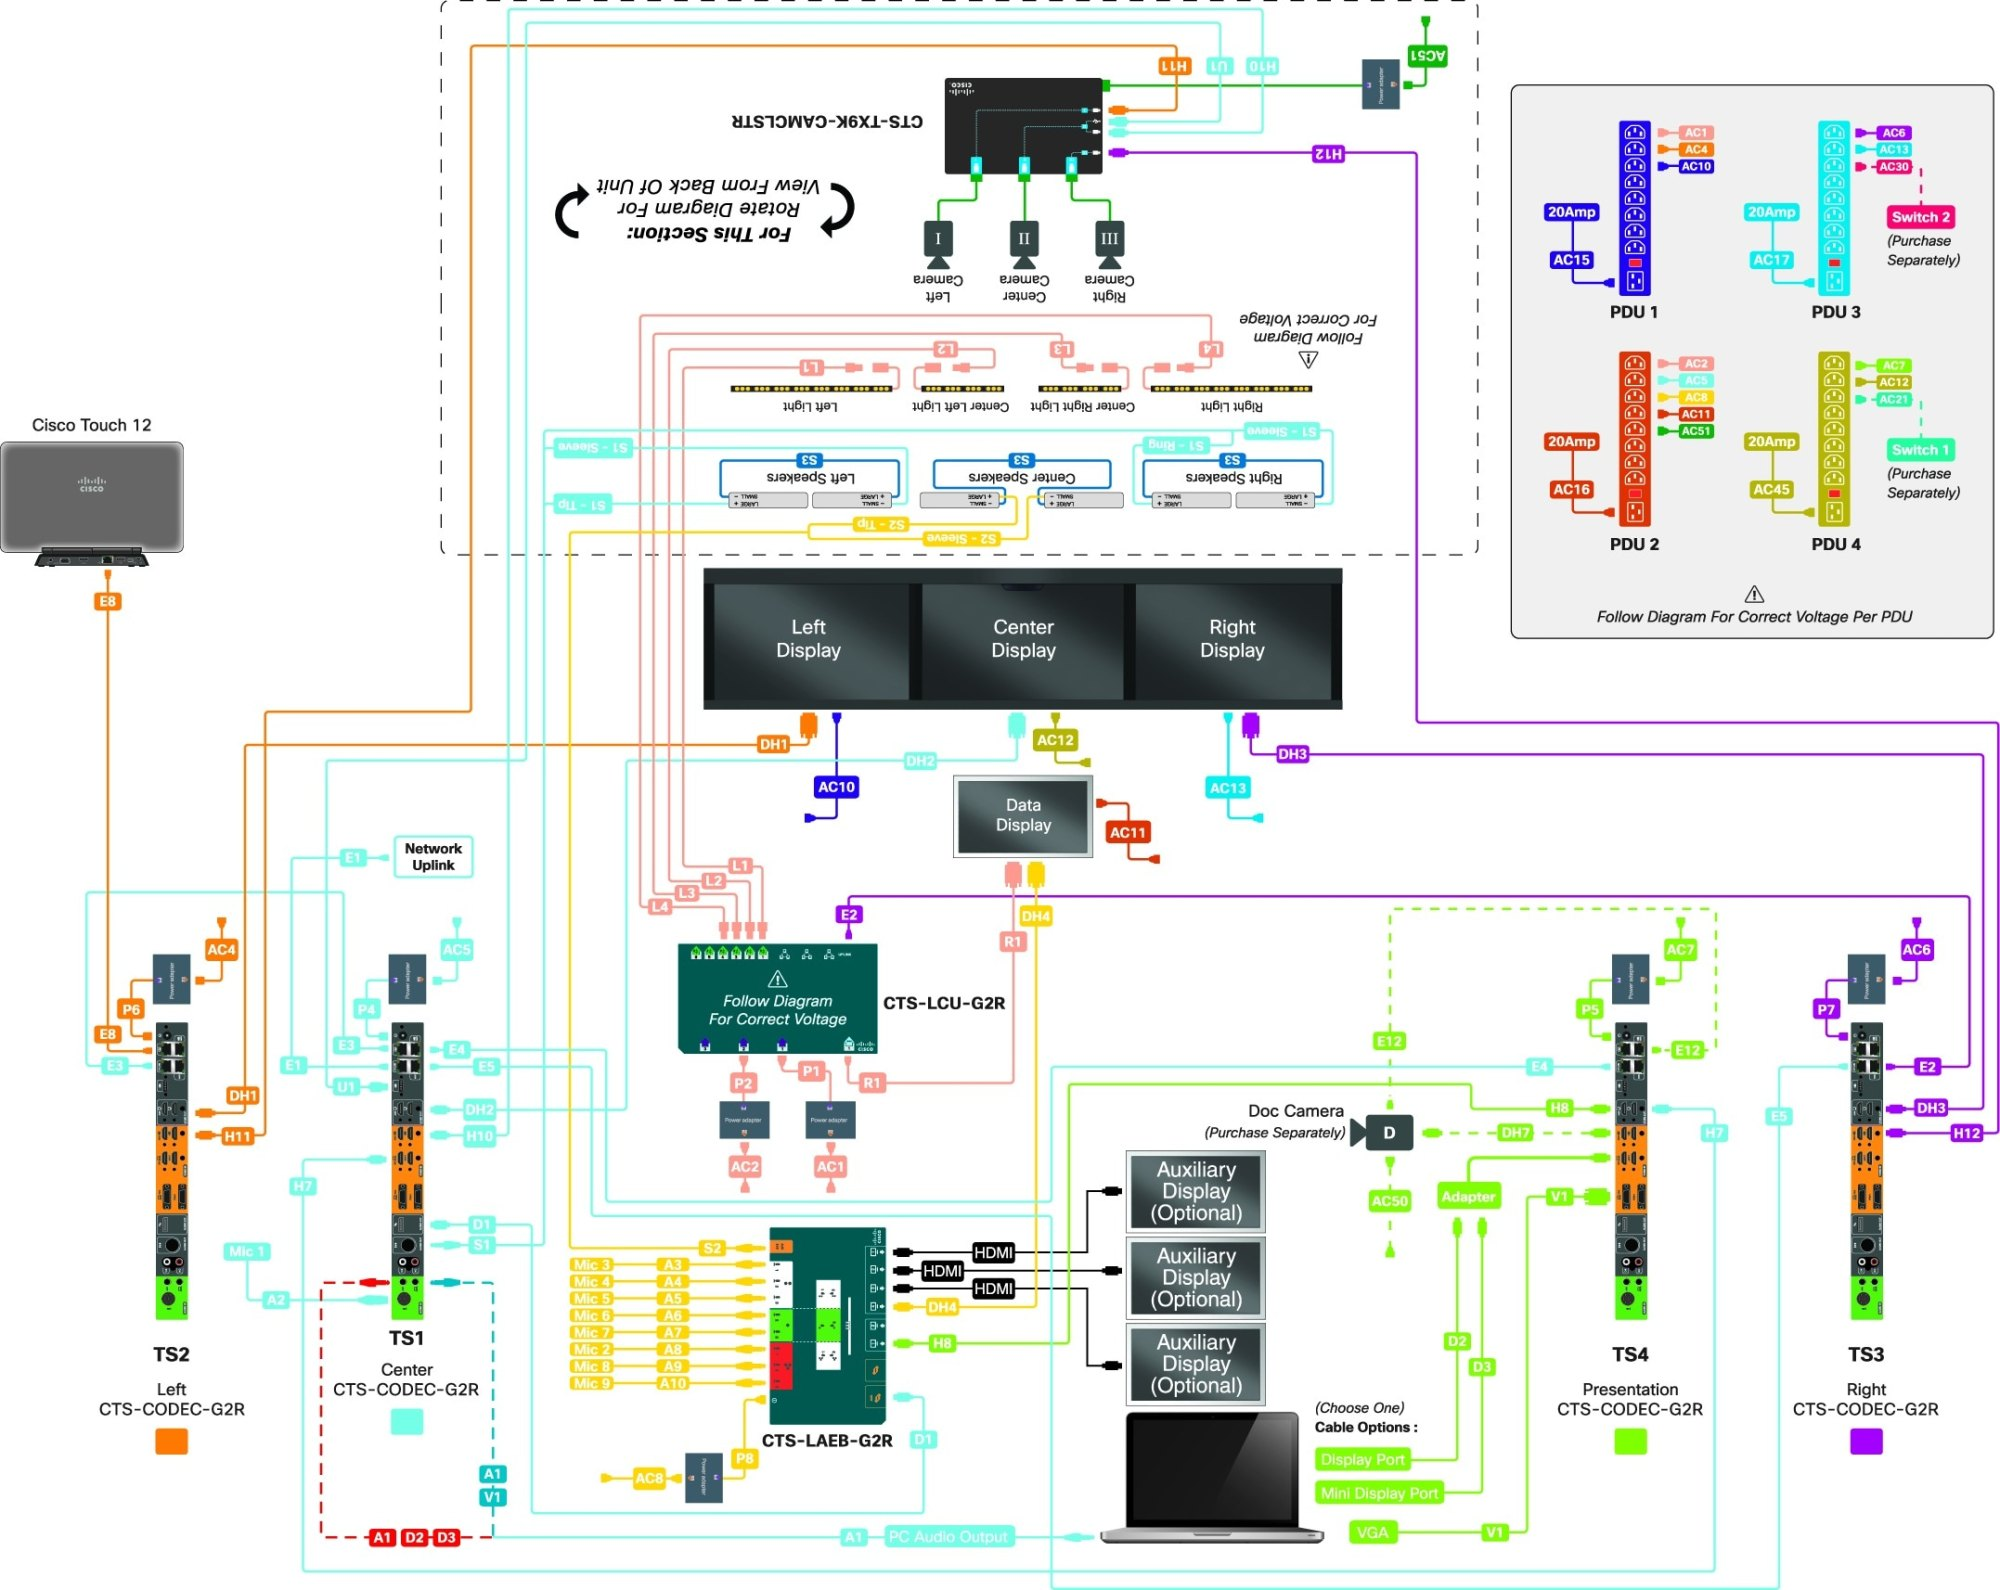 hight resolution of cisco telepresence system tx9000 and tx9200 assembly first time hdmi cable diagram hdmi to dvi